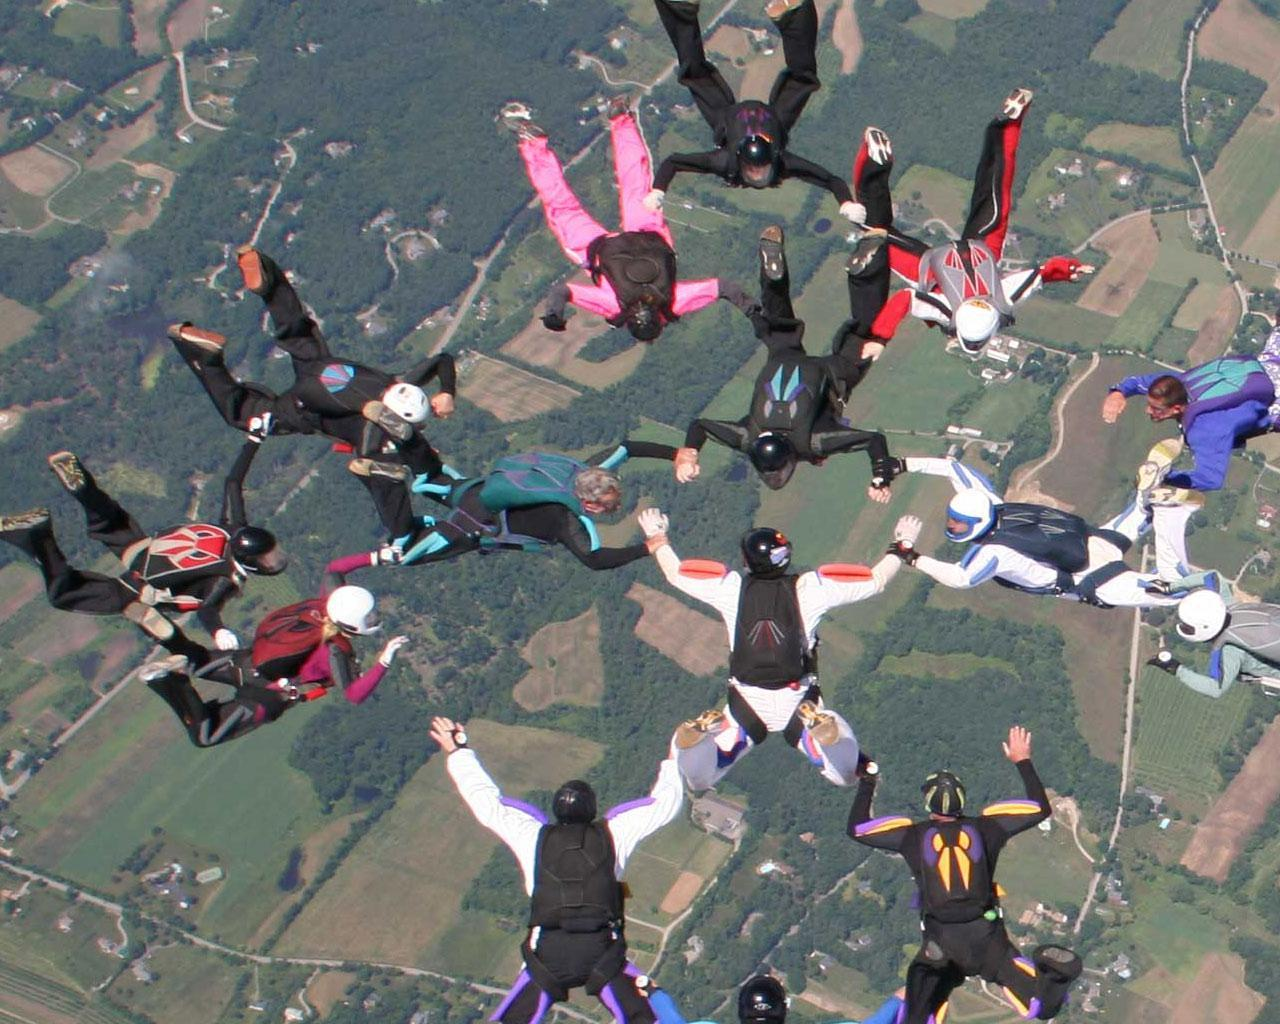 Would you go skydiving?